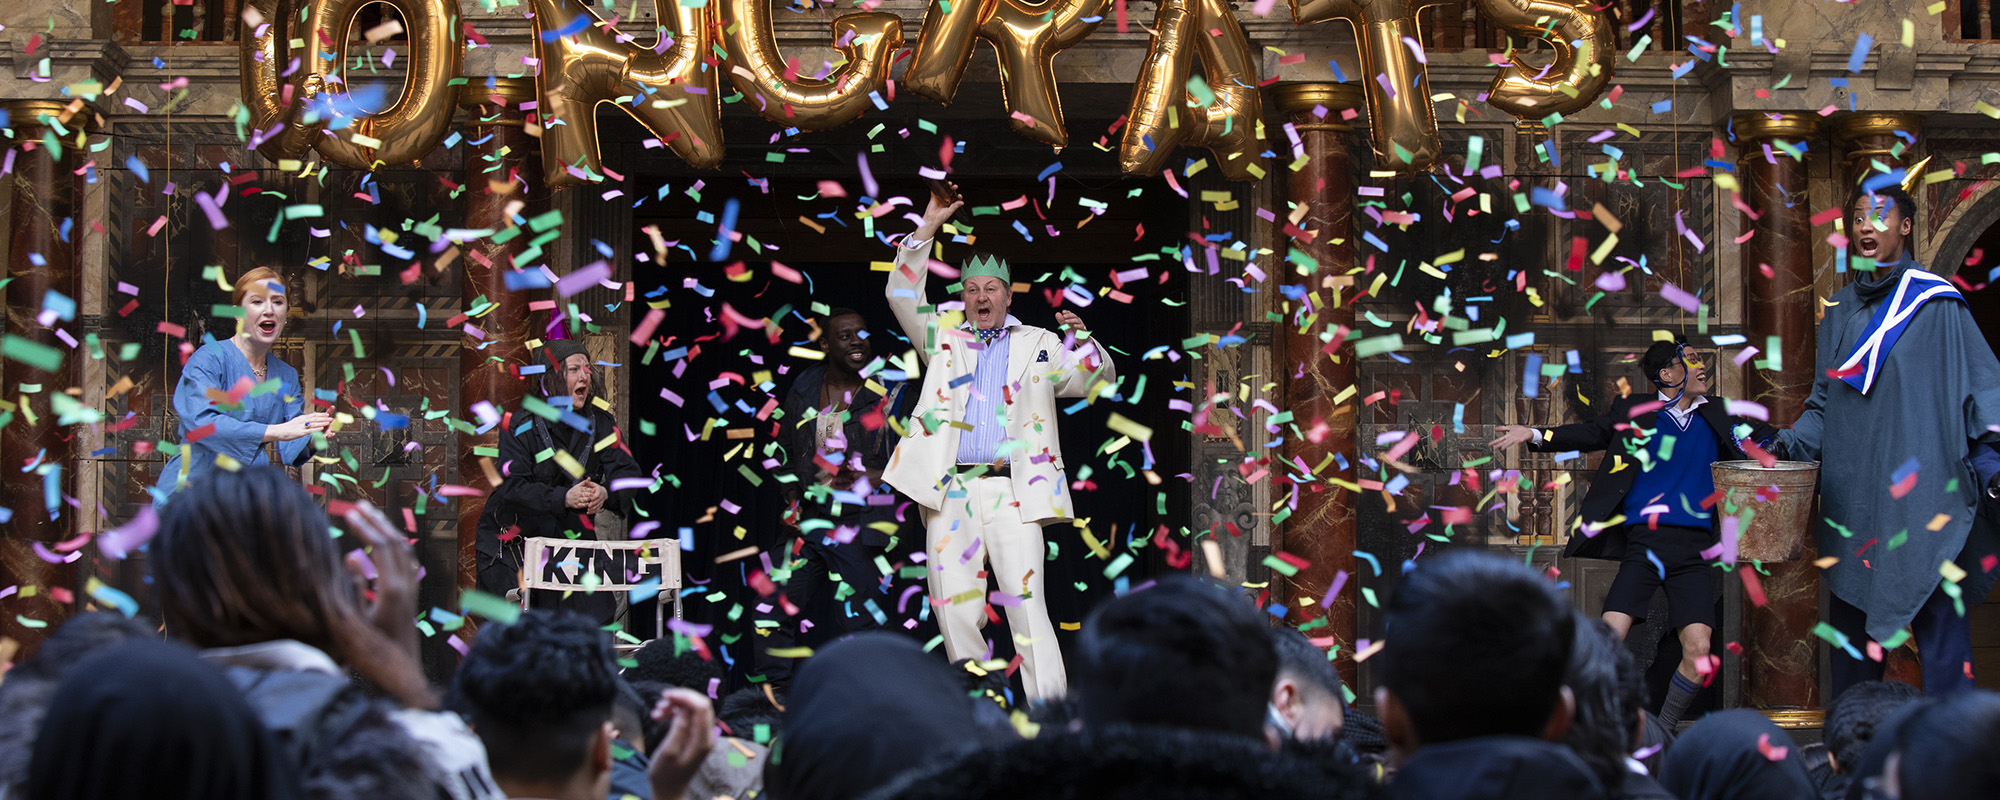 Actors on stage dancing at a party and confetti falling all around them